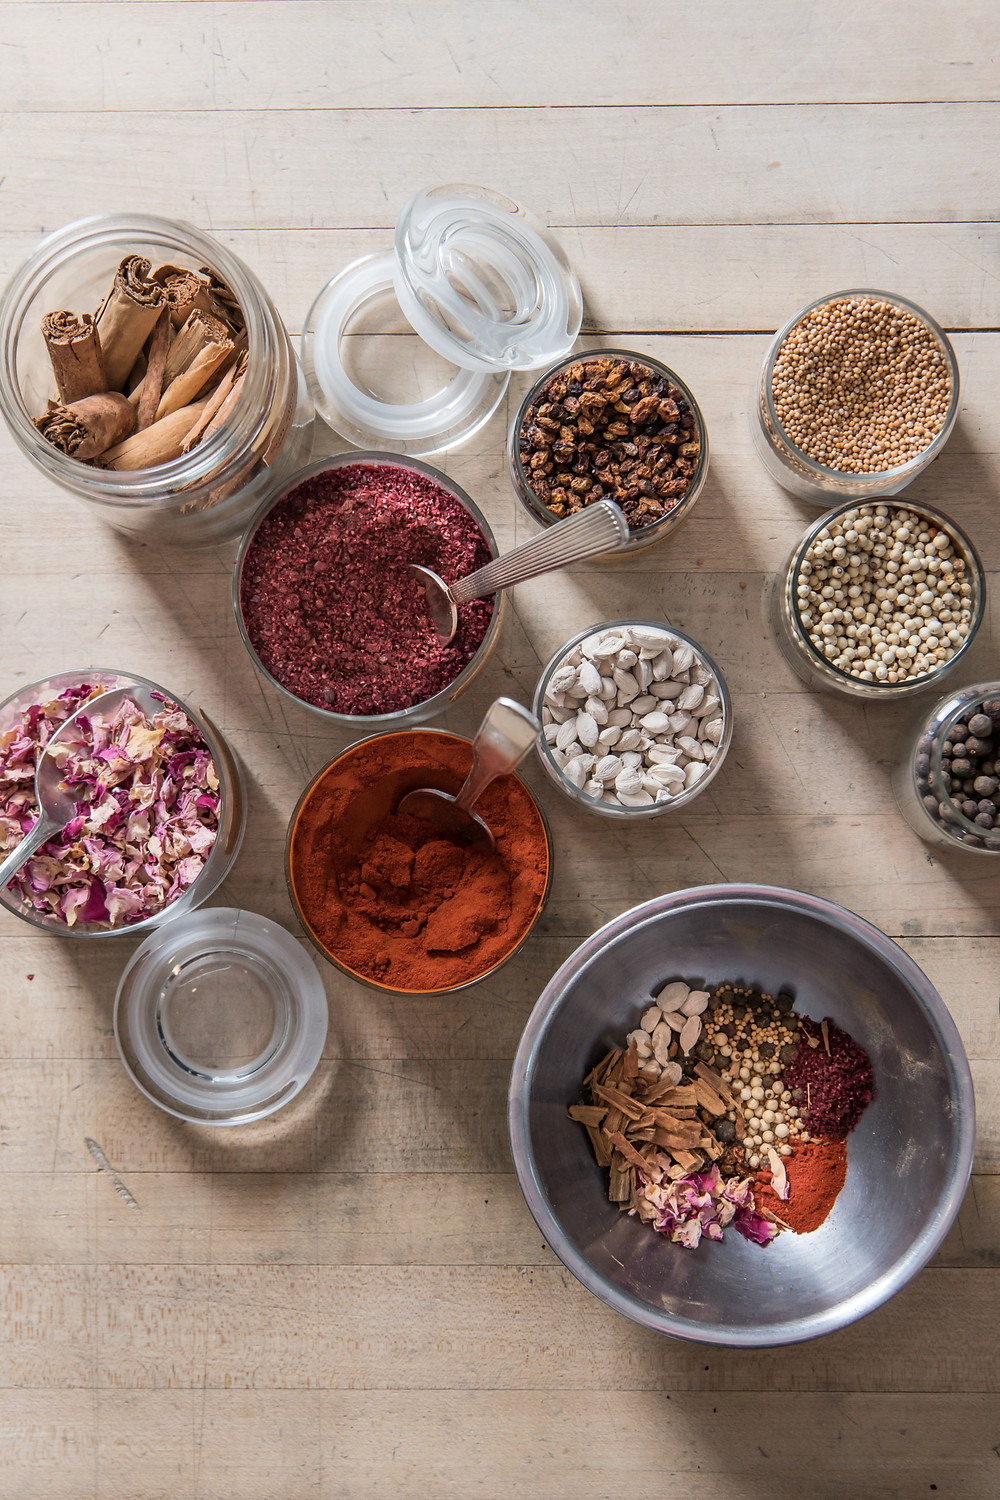 A variety of spices for different meals